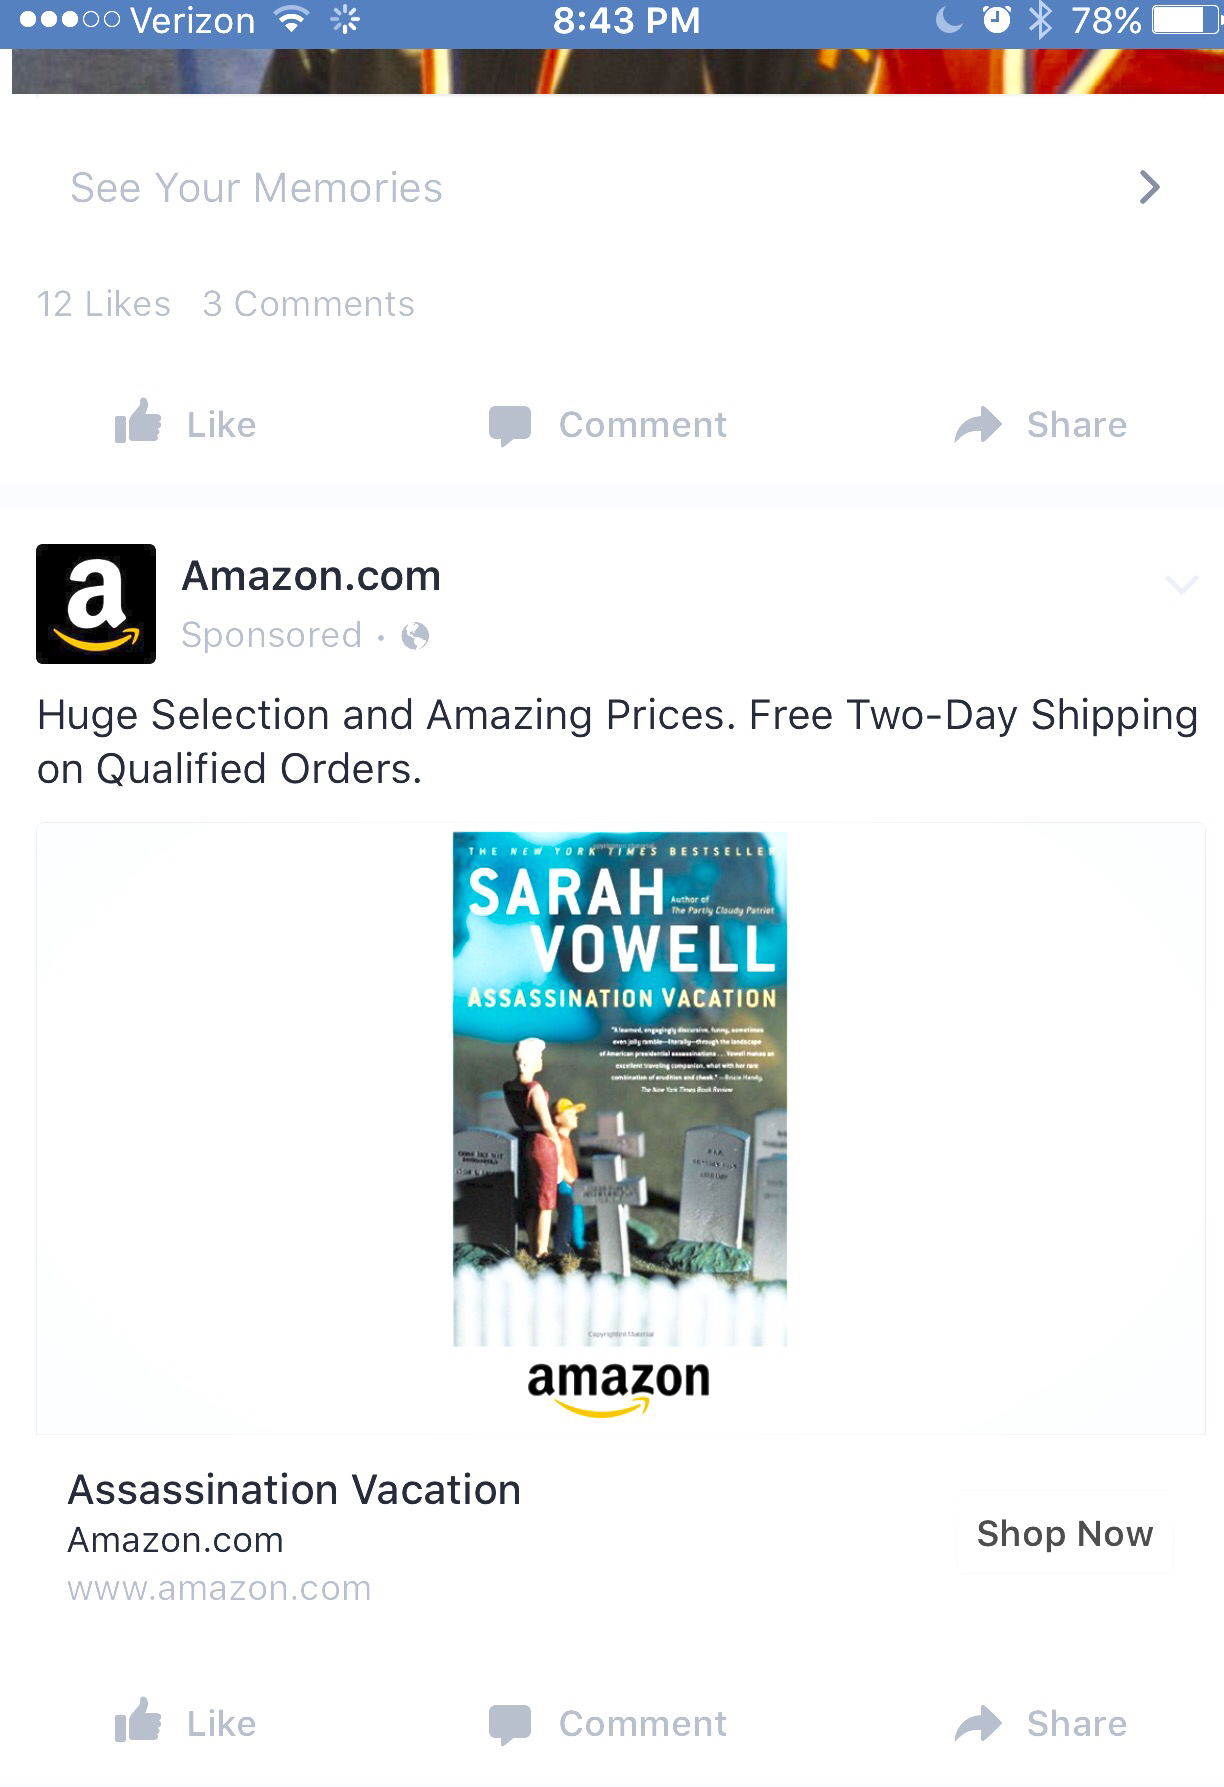 Why are Amazon and Facebook Stalking Me?